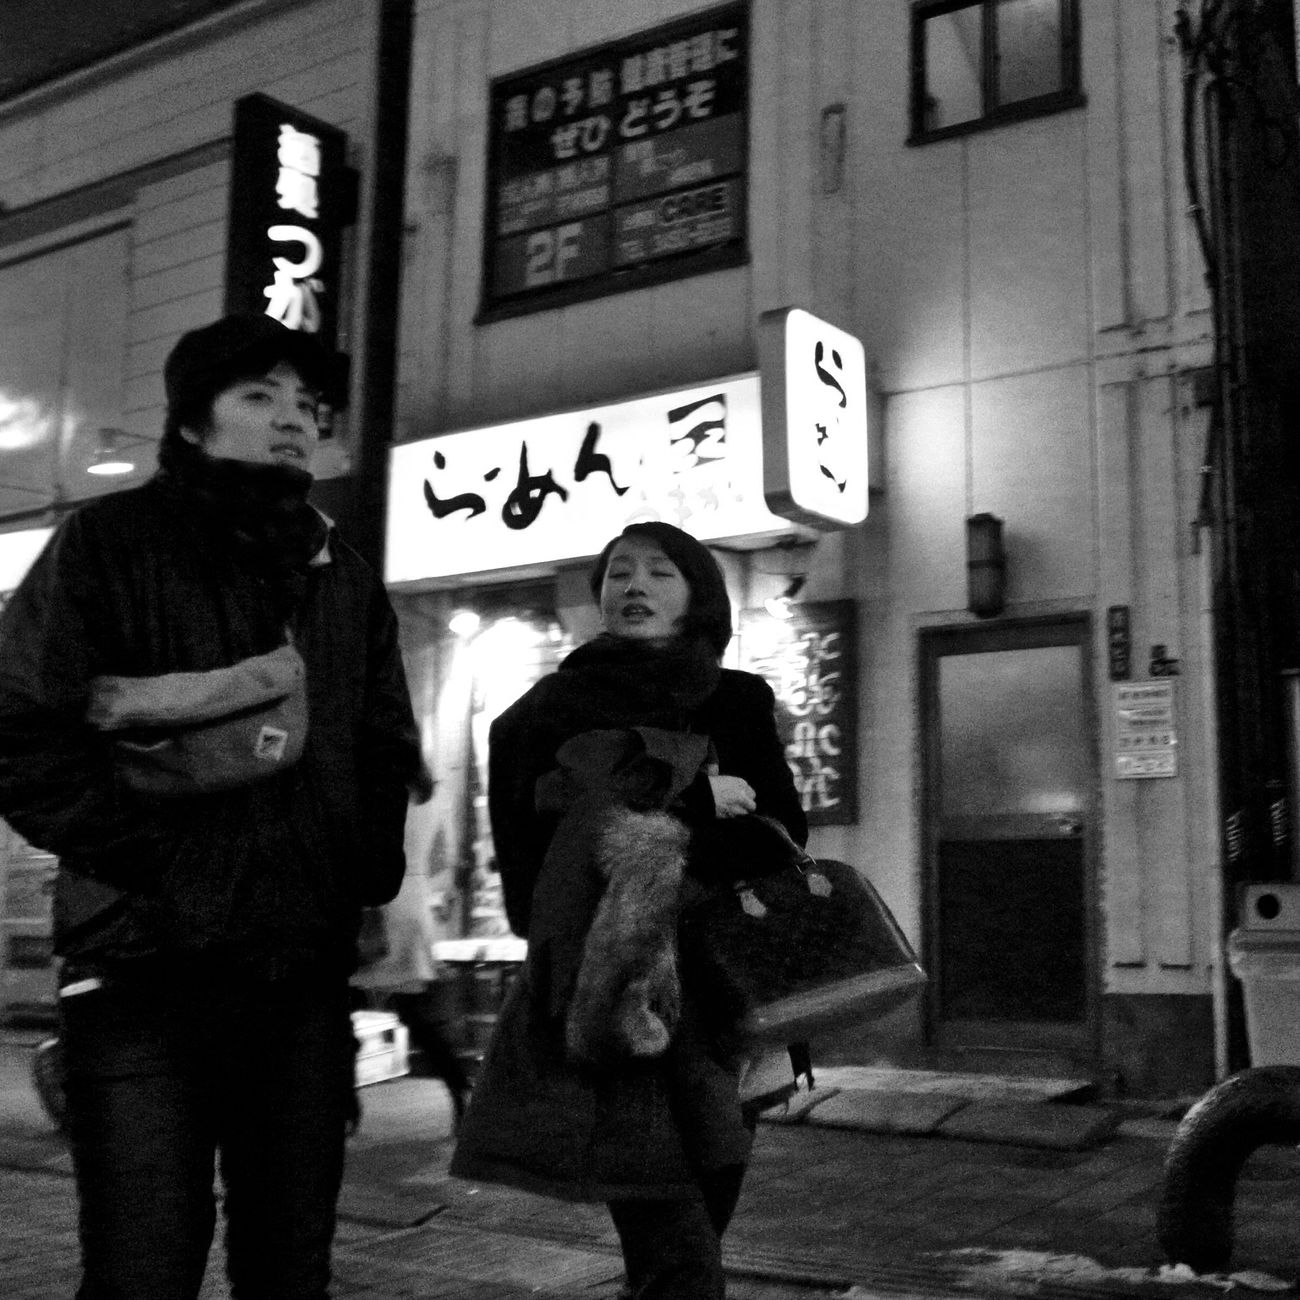 Street City Lights On The Road City Street Winter City Life Peoplephotography Snapshots Of Life People Nightphotography Night Streetphoto_bw Snapshot Streetphotography_bw Blur B&w Street Photography Shinagawa 品川 Tokyo